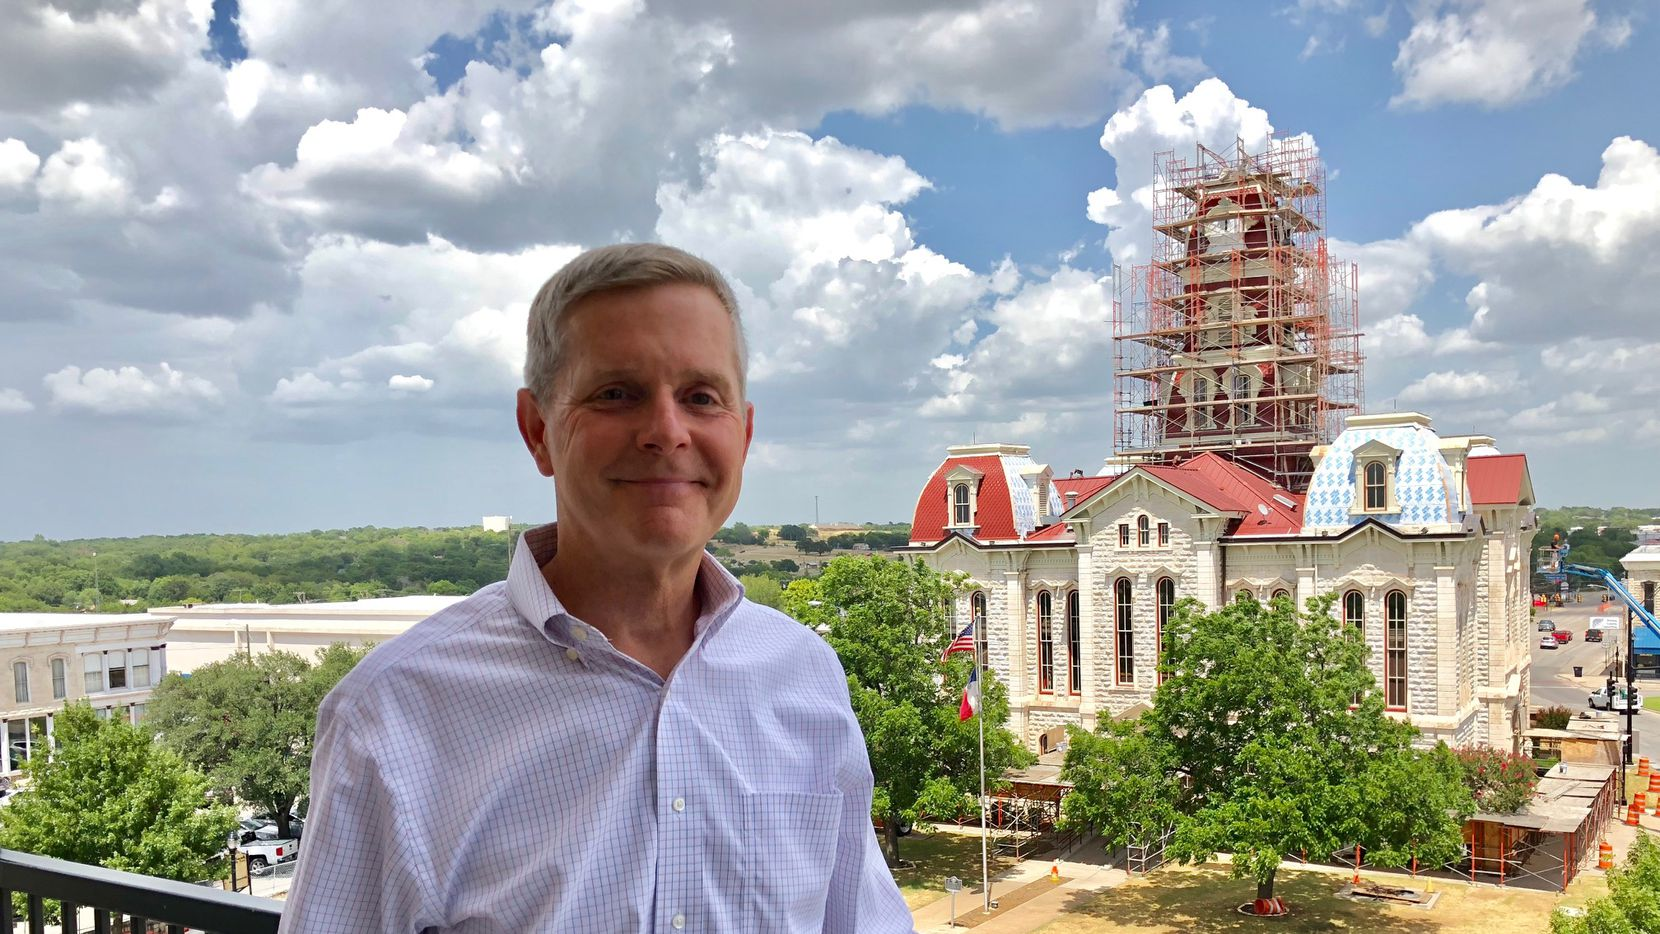 State Rep. Phil King at his Weatherford office. He helped pass a law 20 years ago to deregulate electricity in Texas. Now The Watchdog asks him to help fix broken parts of the system. King is running for House speaker.